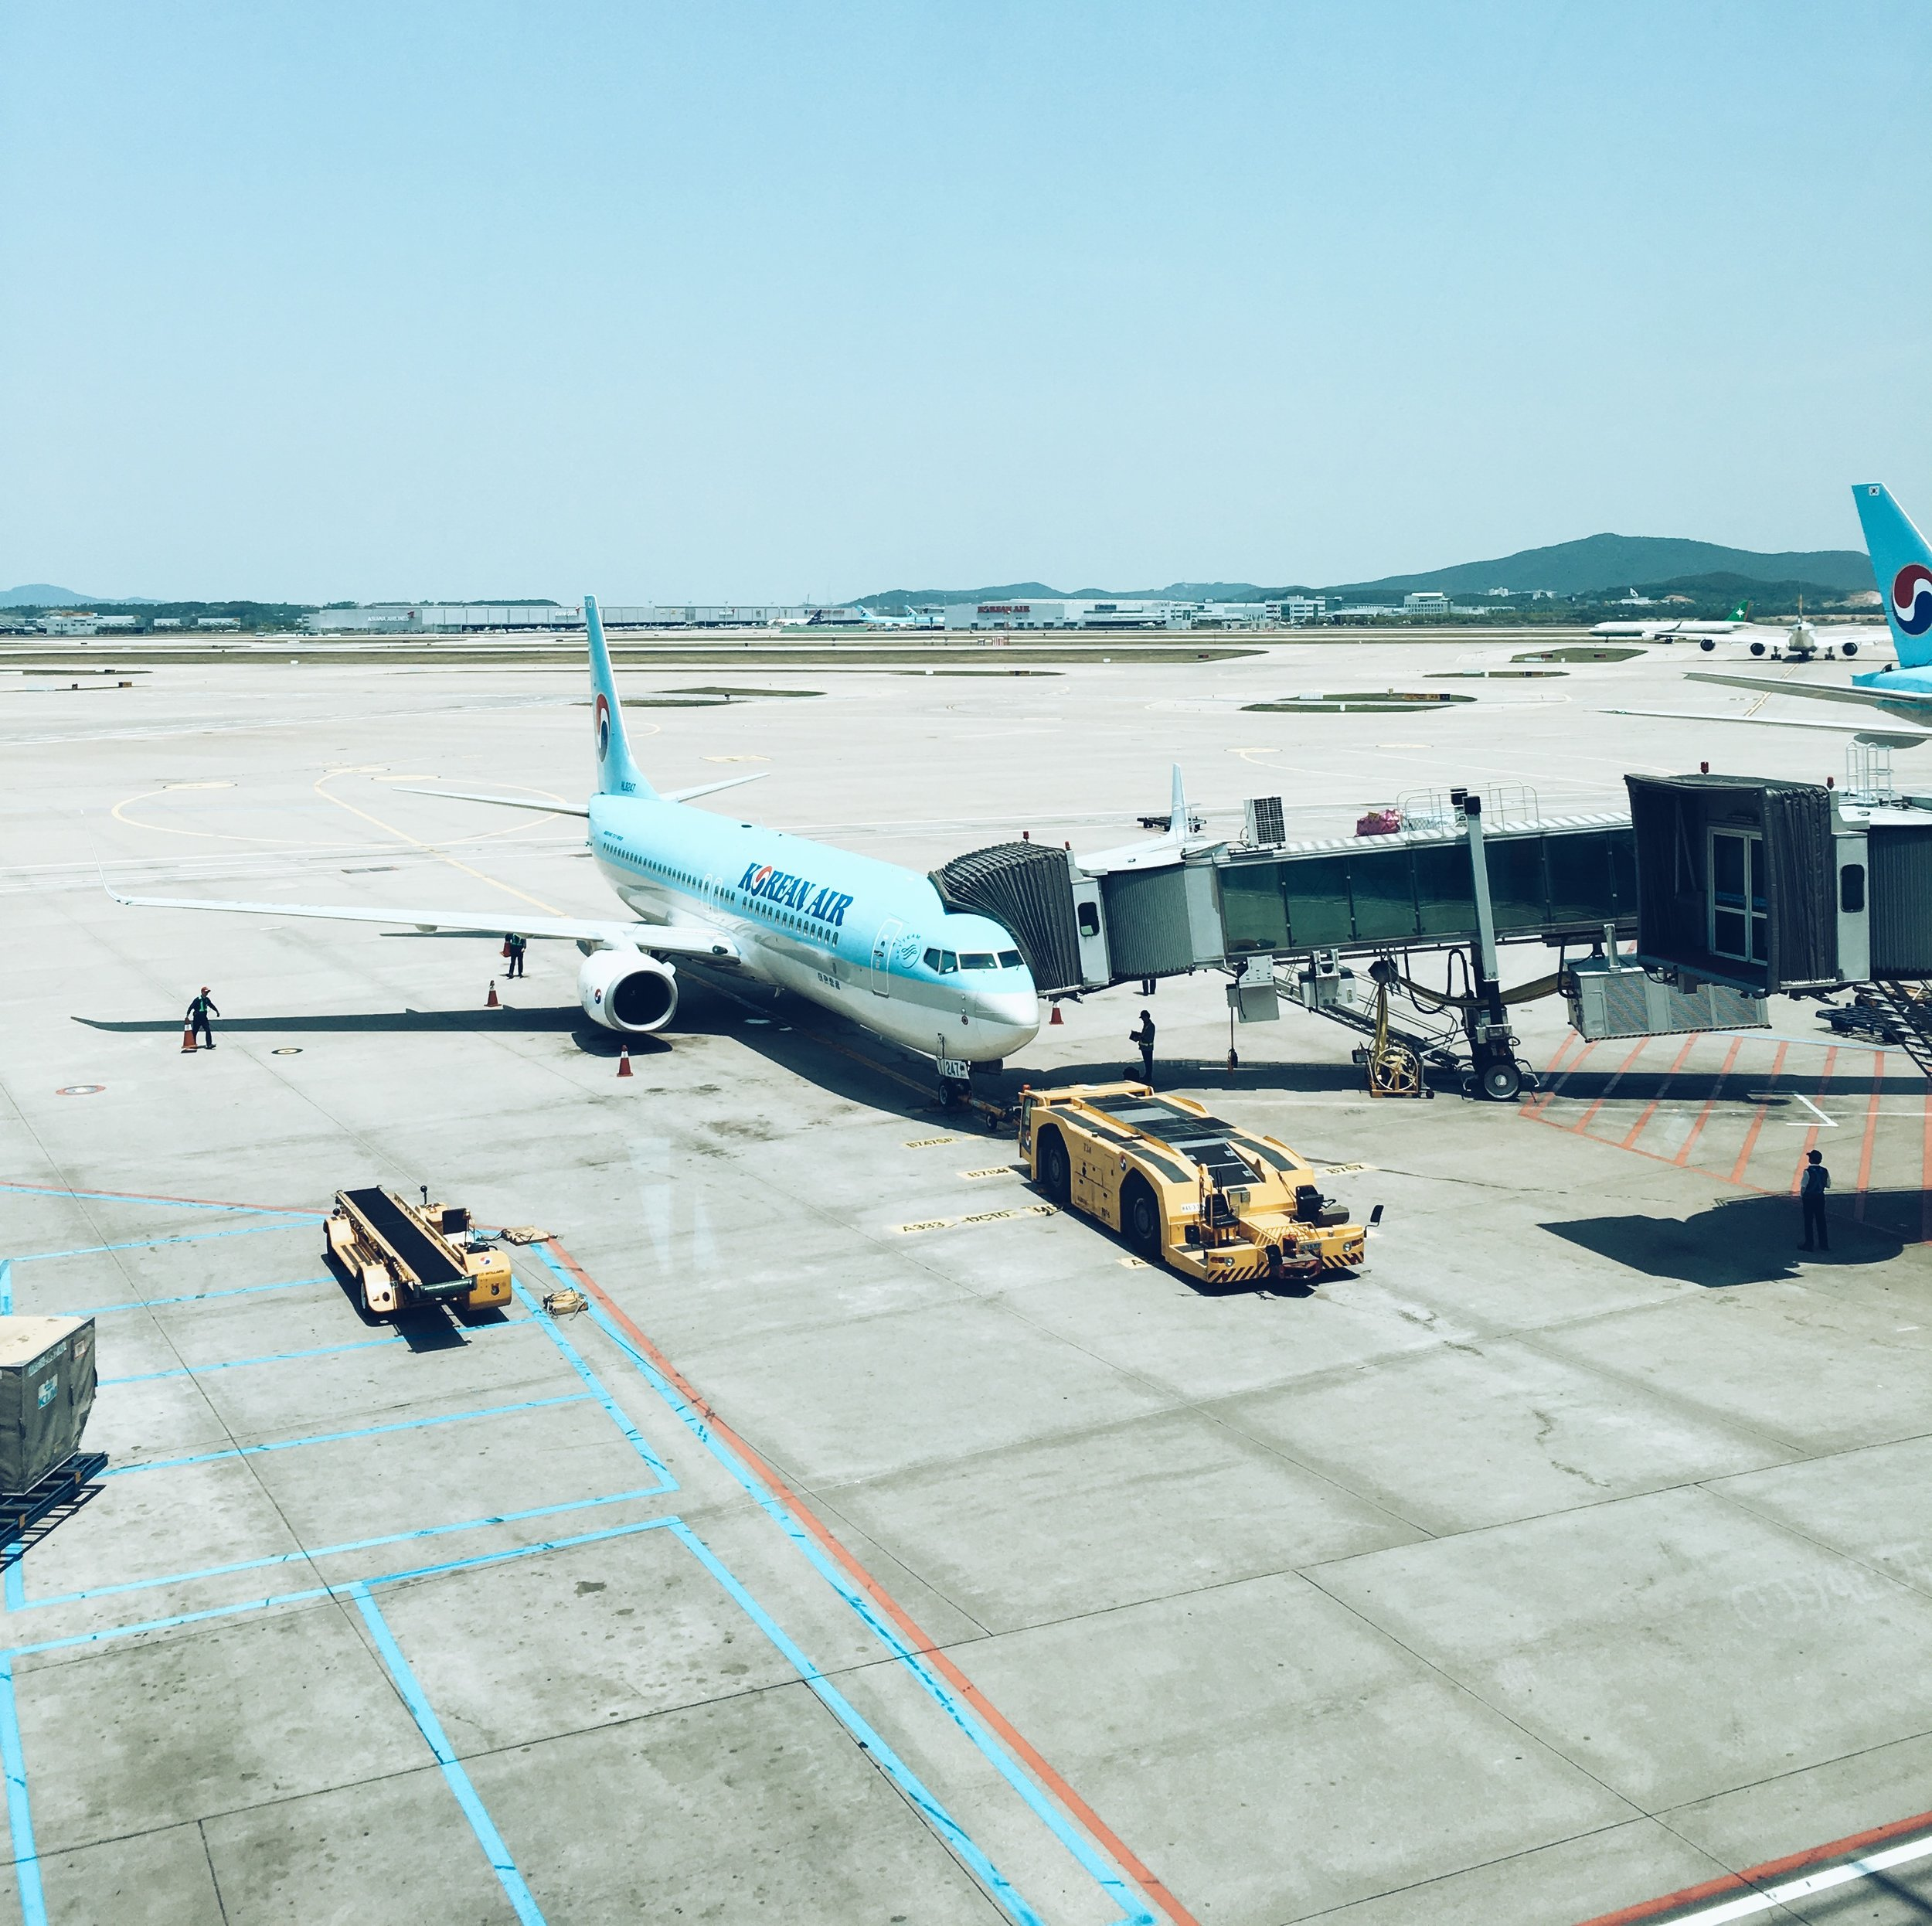 My stopover in Seoul from Austrlaia to Europe, South Korea with Korean Air.